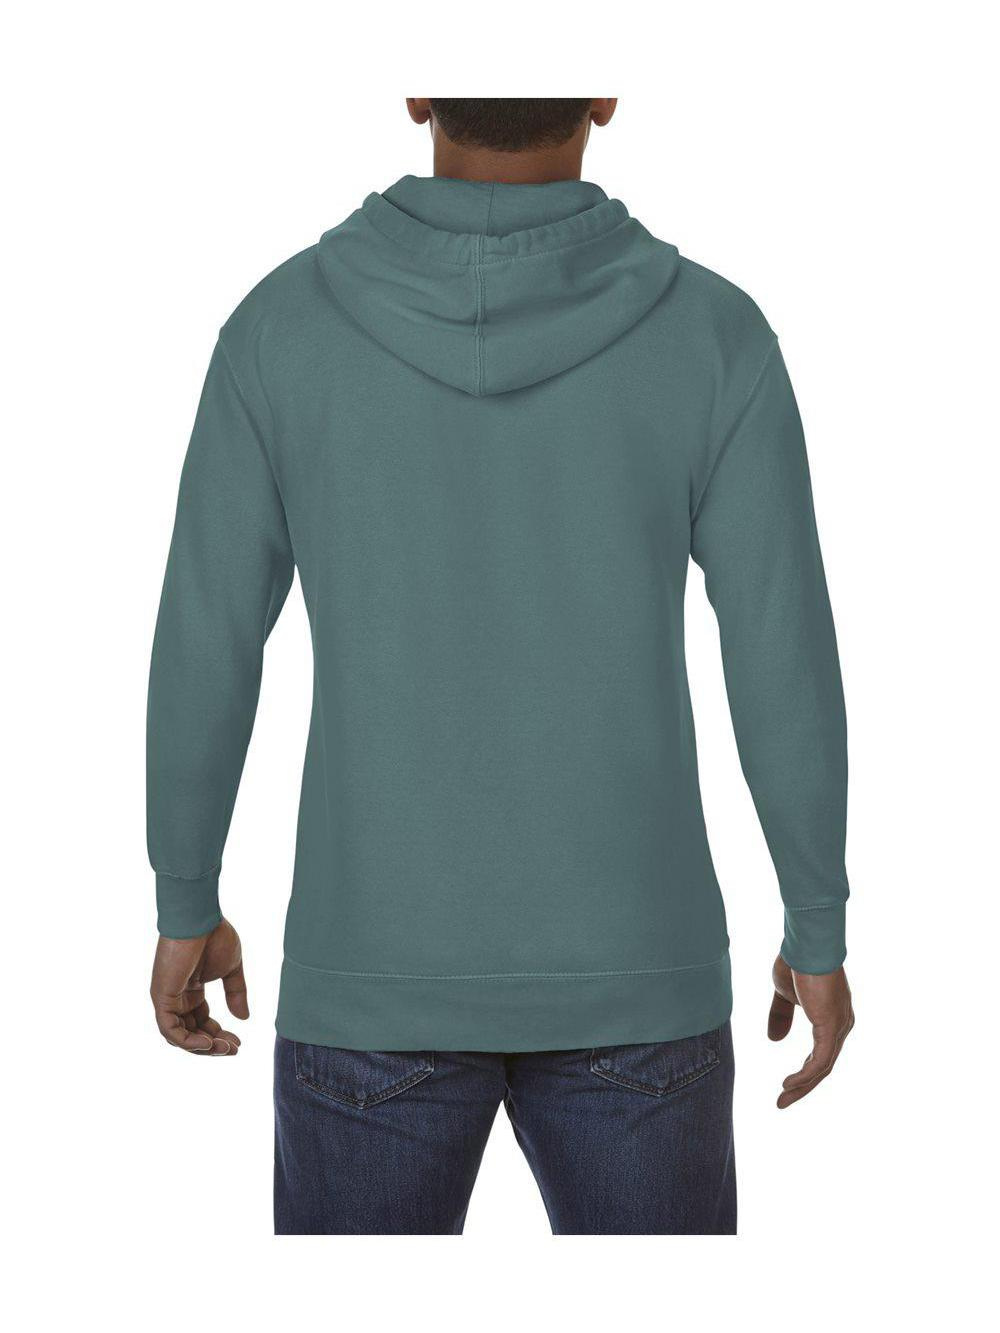 Comfort-Colors-Garment-Dyed-Hooded-Pullover-Sweatshirt-1567 thumbnail 7